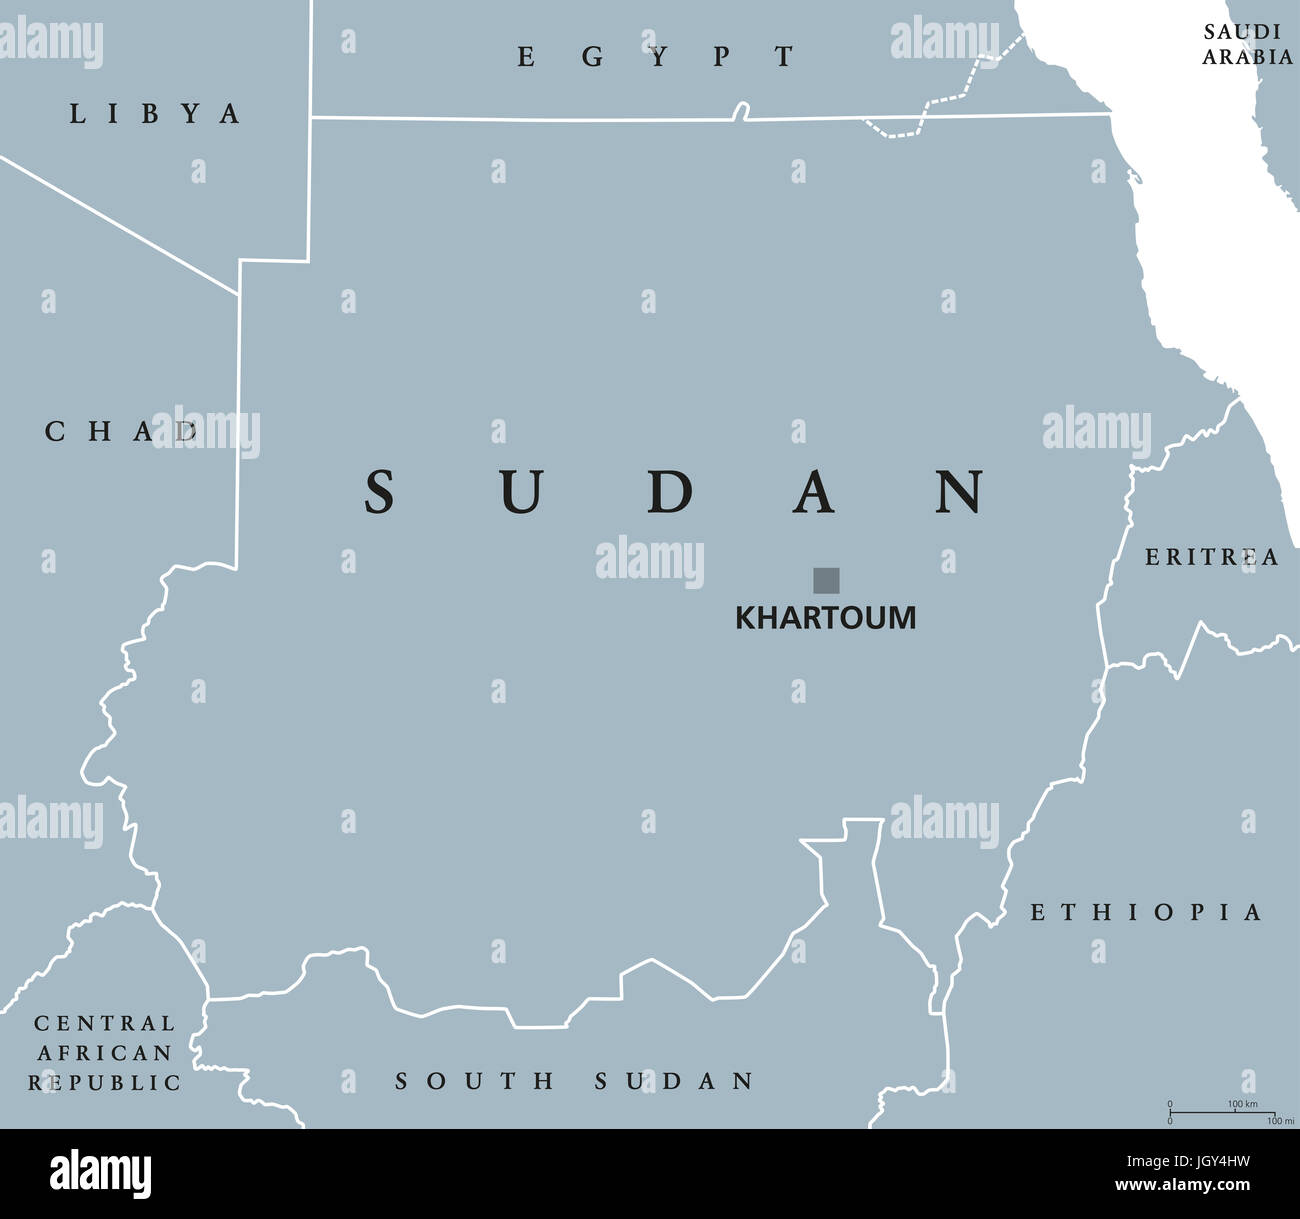 Sudan political map with capital Khartoum and national borders